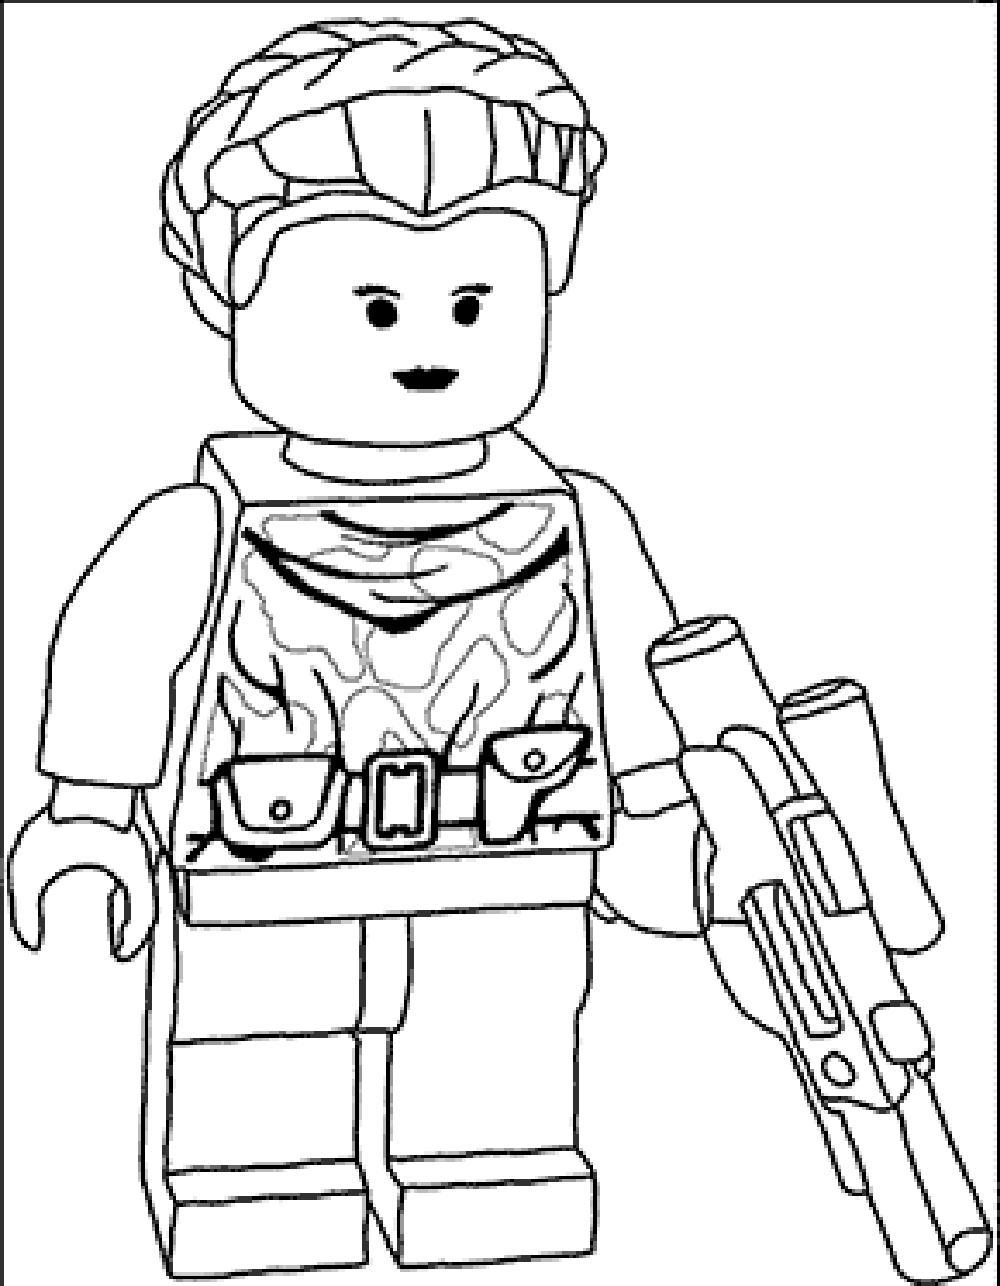 lego star wars pictures to colour lego star wars clone wars coloring pages printable star pictures to colour lego wars